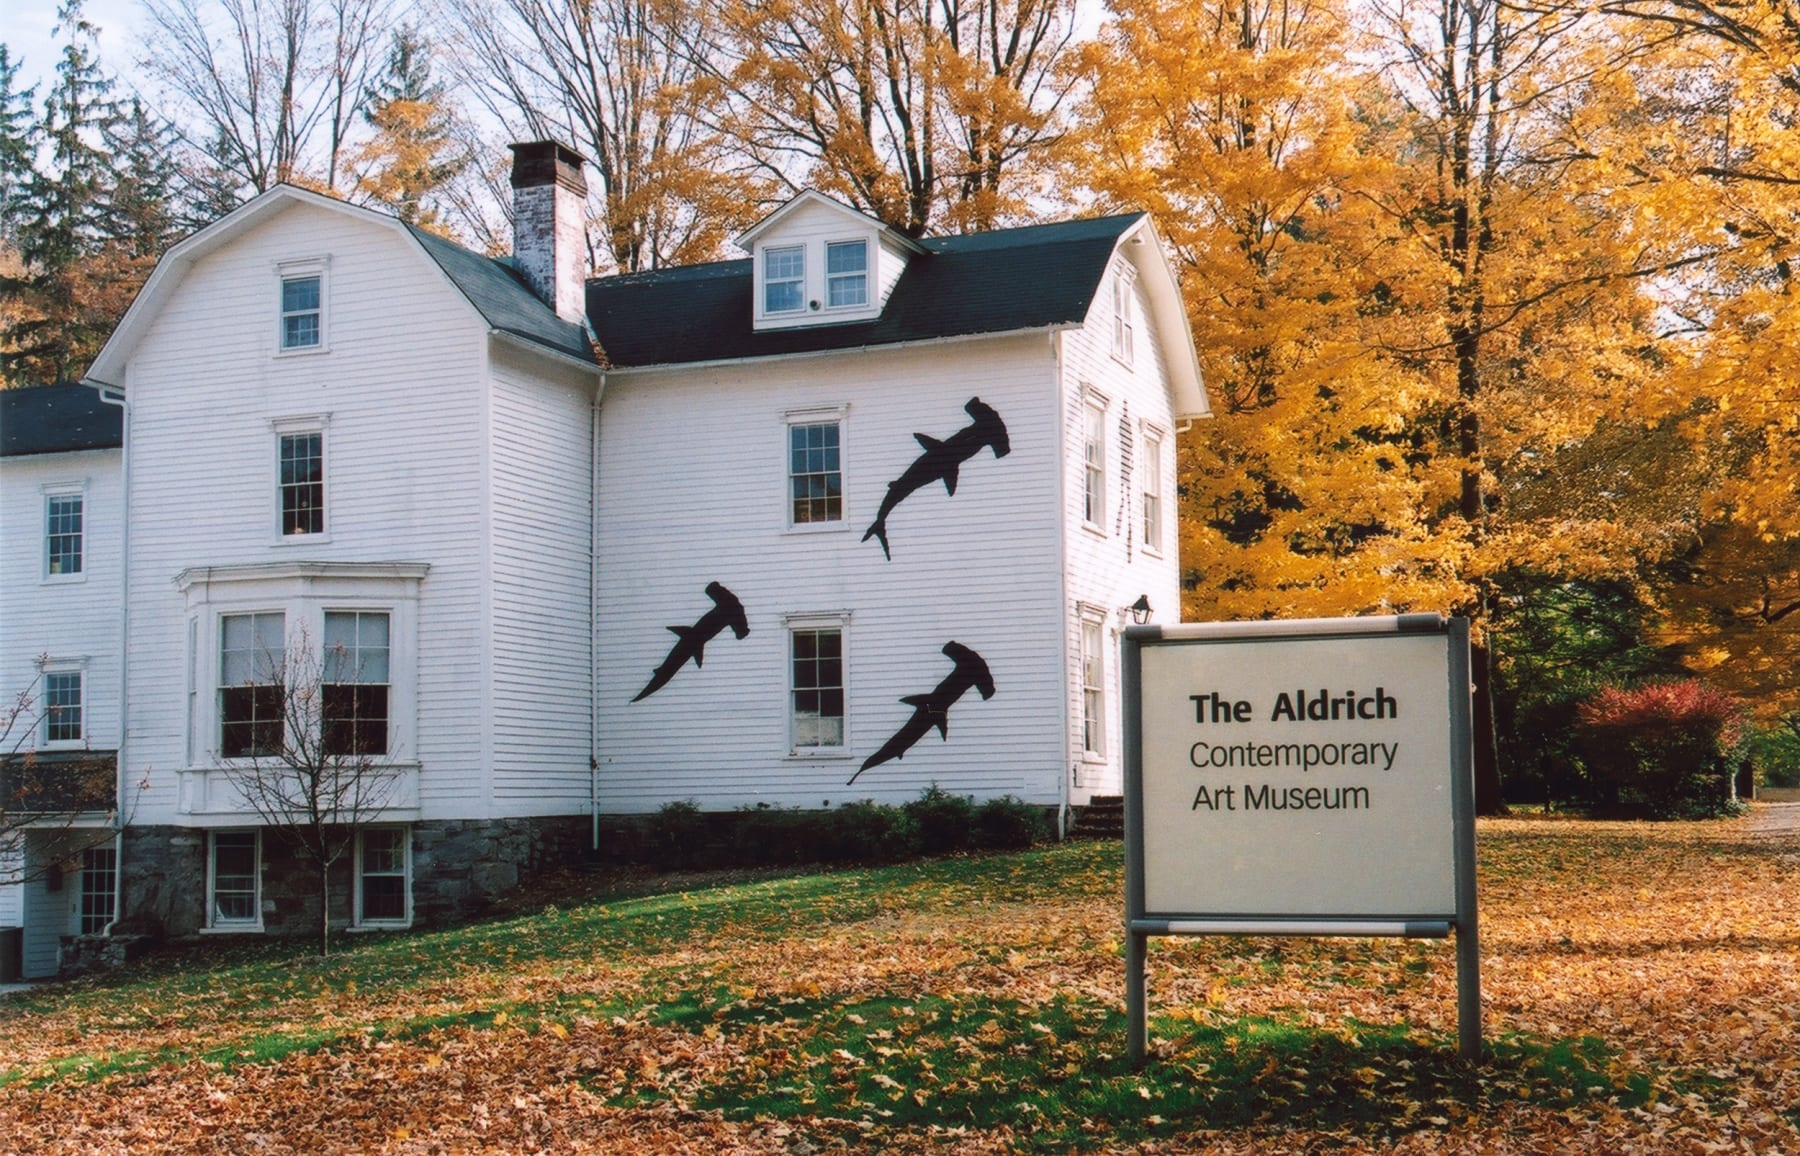 The Aldrich Contemporary Art Museum, Ridgefield, Connecticut